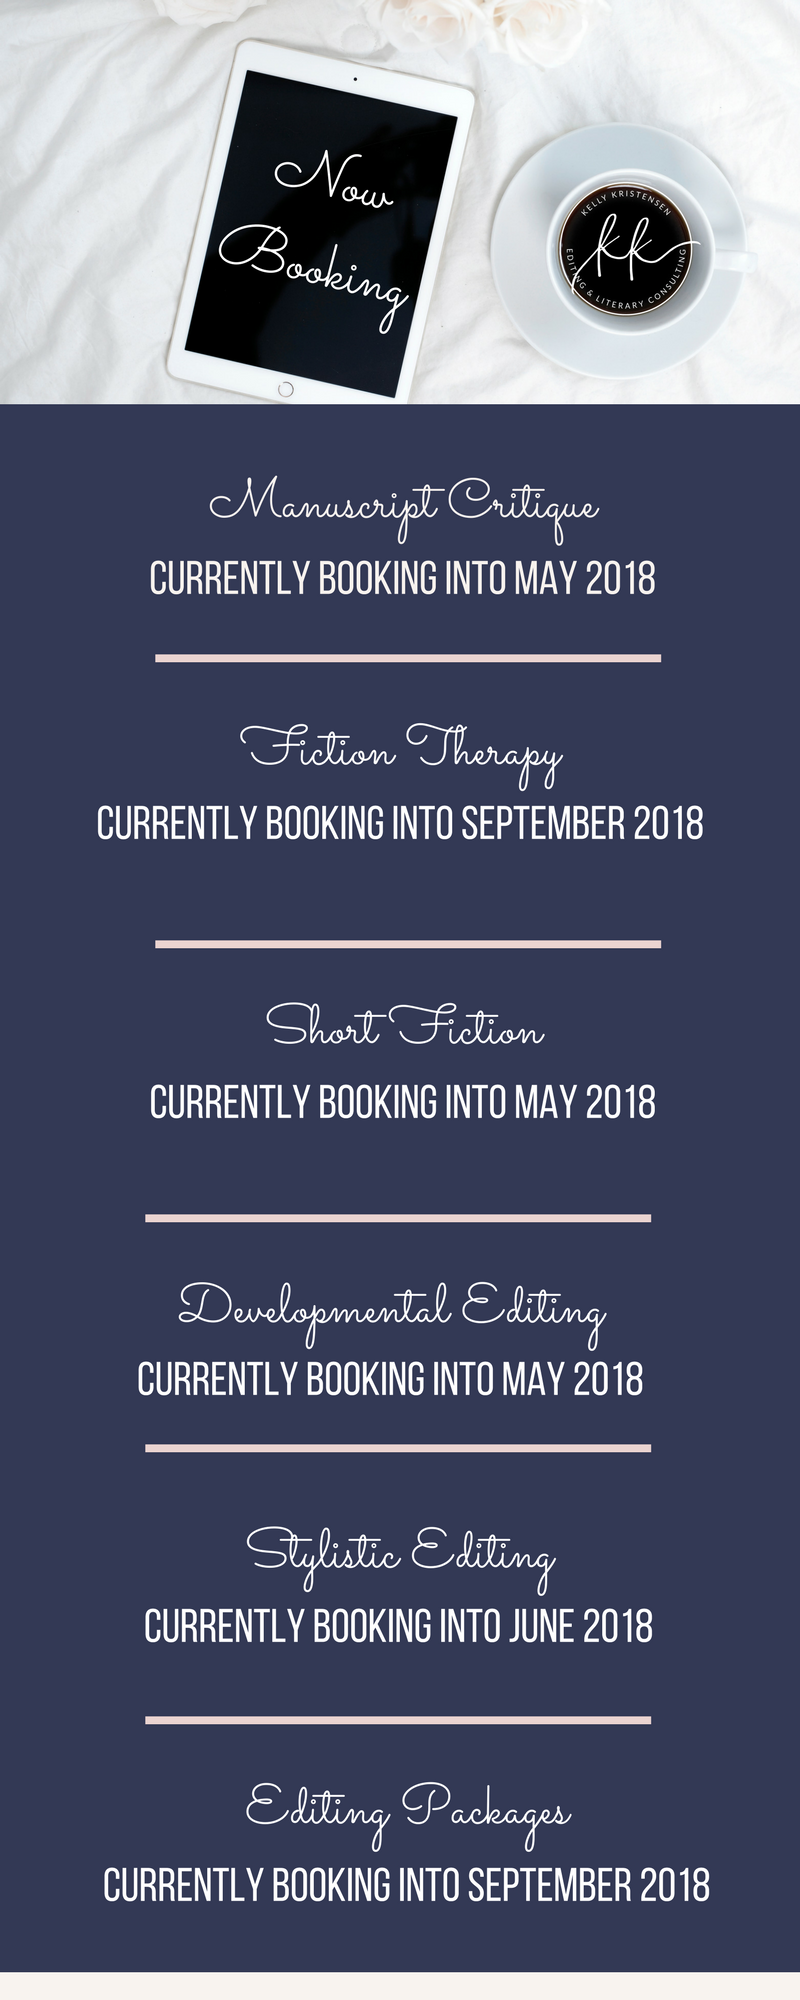 CURRENTLY BOOKING